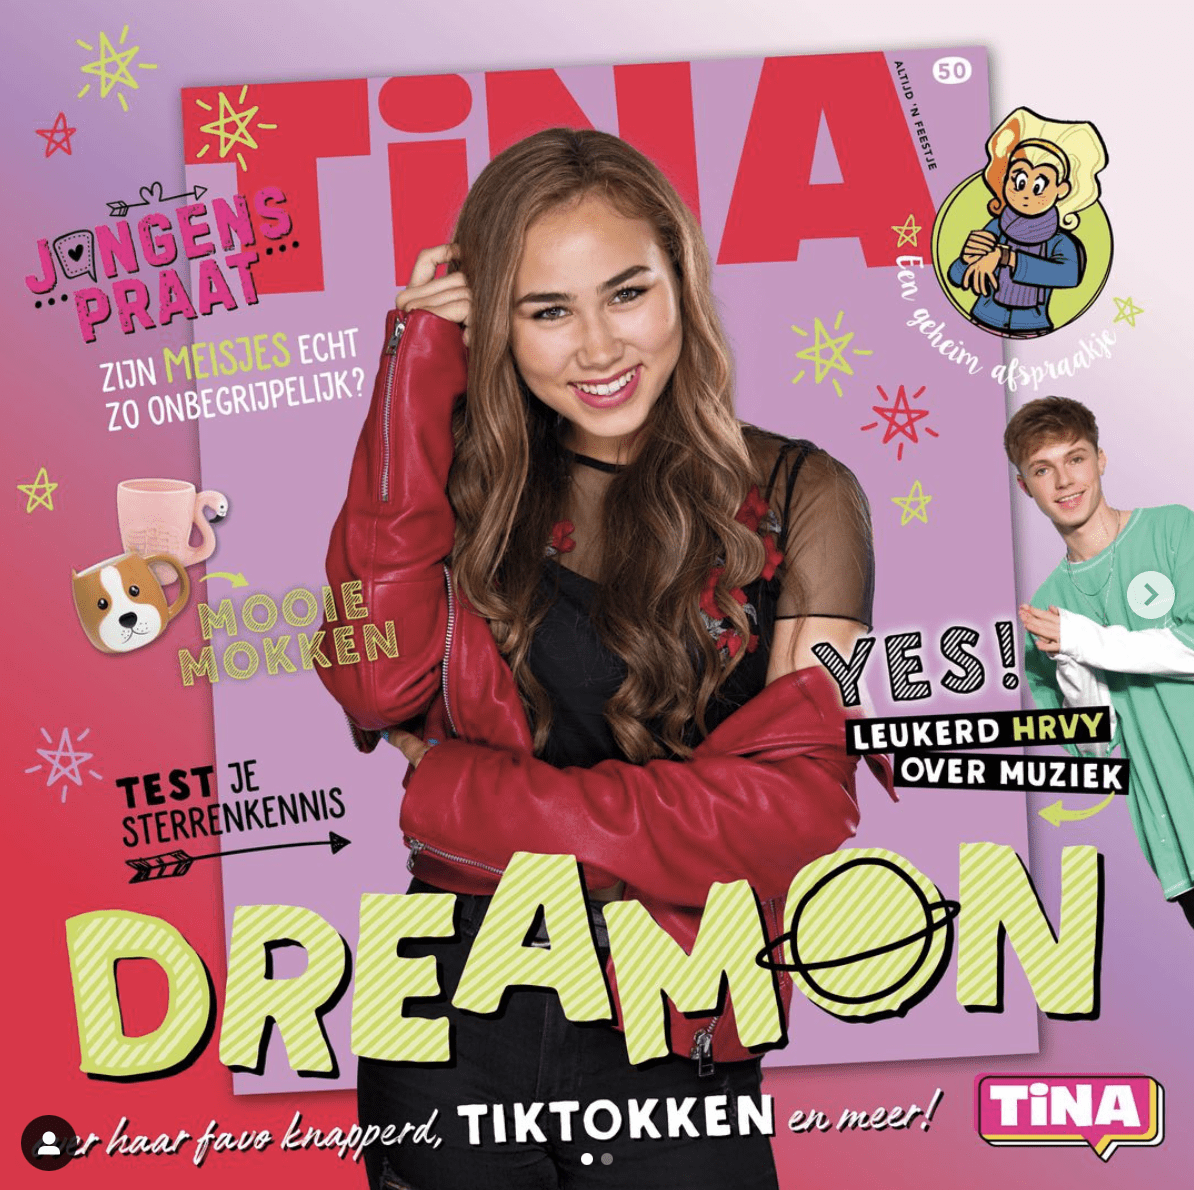 Tina-tijdschrift-cover-dreamon-anique